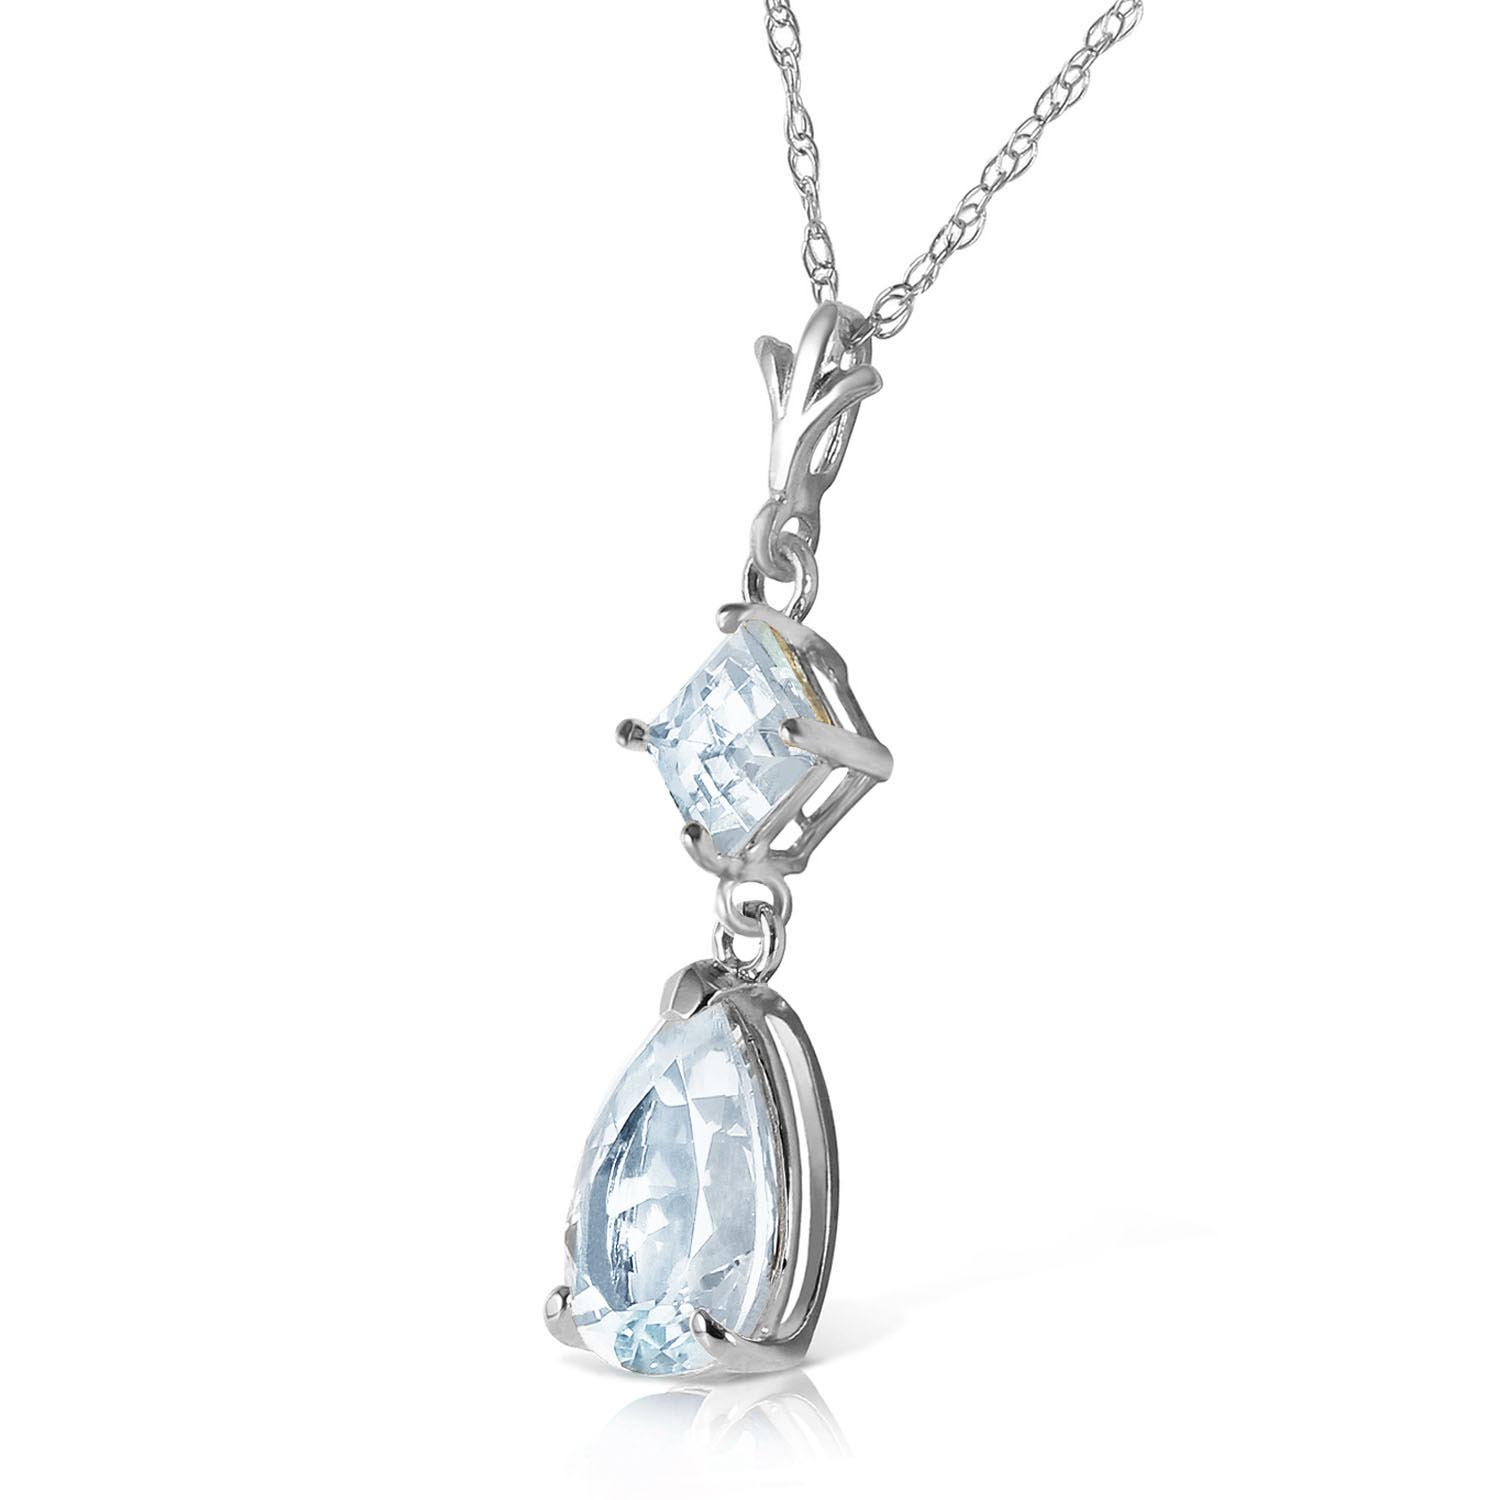 Aquamarine Droplet Pendant Necklace 2.0ctw in 9ct White Gold